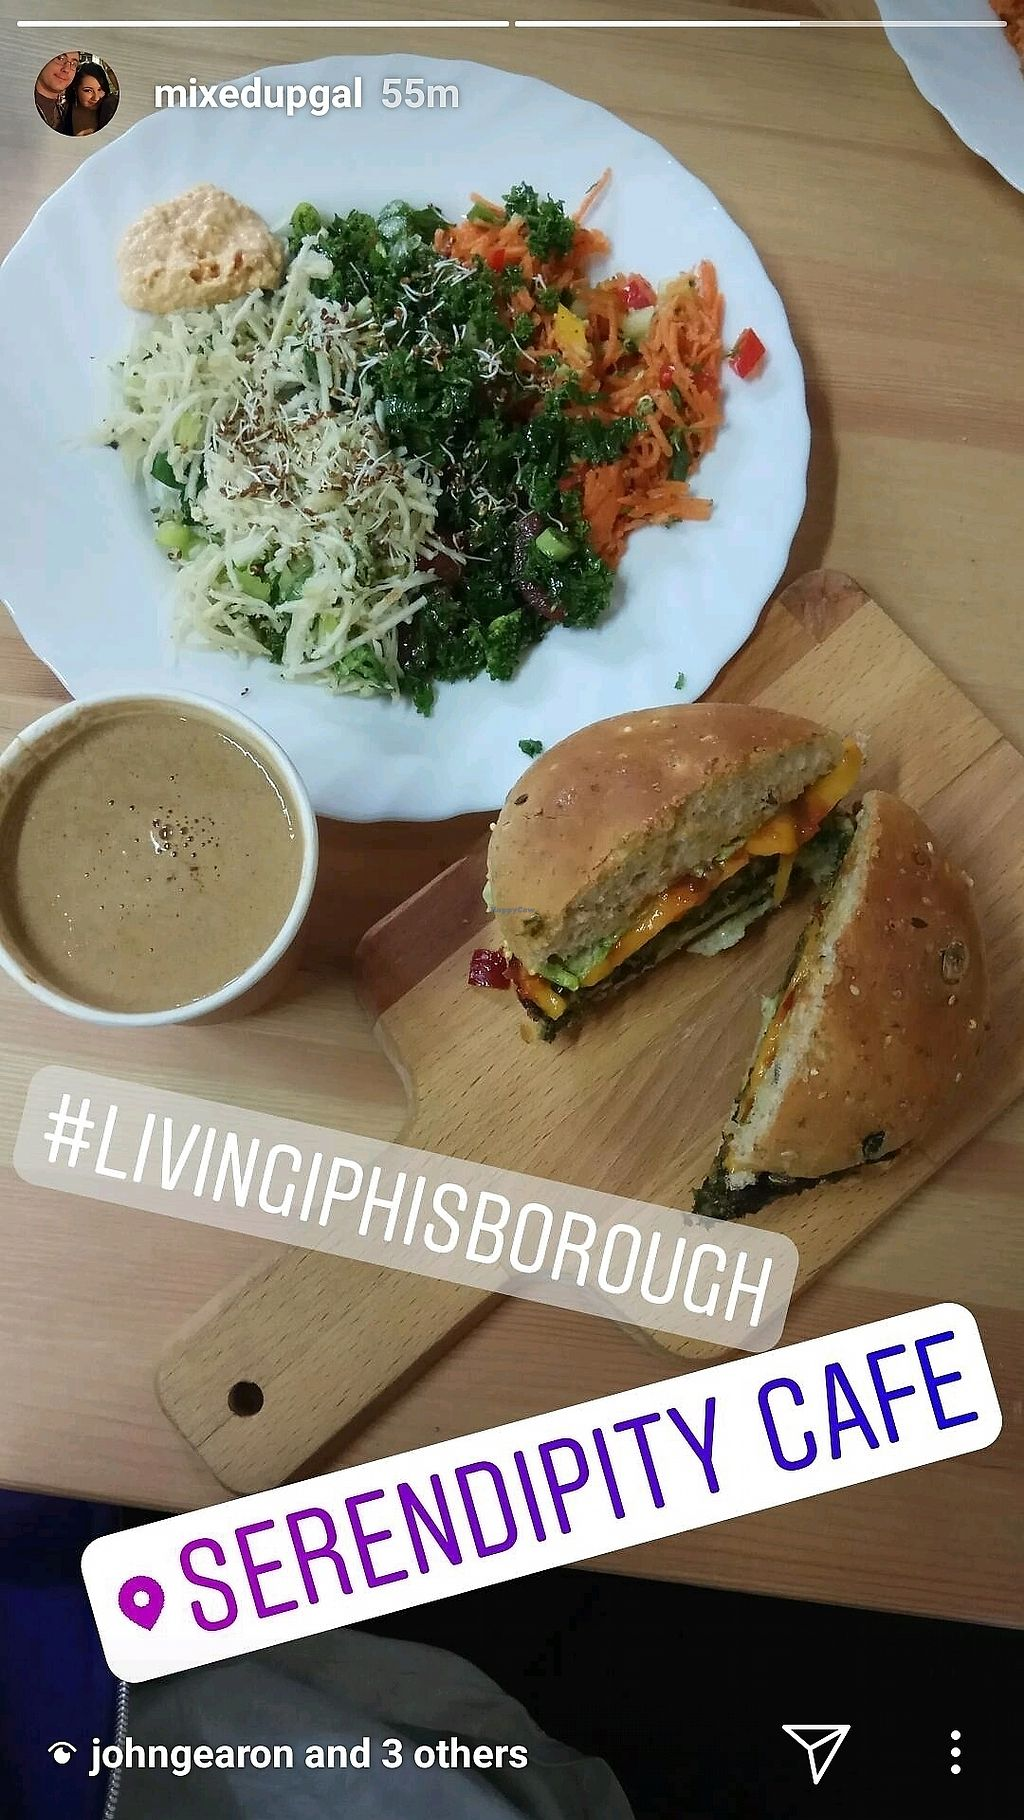 """Photo of Living I Club  by <a href=""""/members/profile/ZahairaCaffreyEsmau"""">ZahairaCaffreyEsmau</a> <br/>the best burgers ever!!  <br/> November 4, 2017  - <a href='/contact/abuse/image/102464/321692'>Report</a>"""